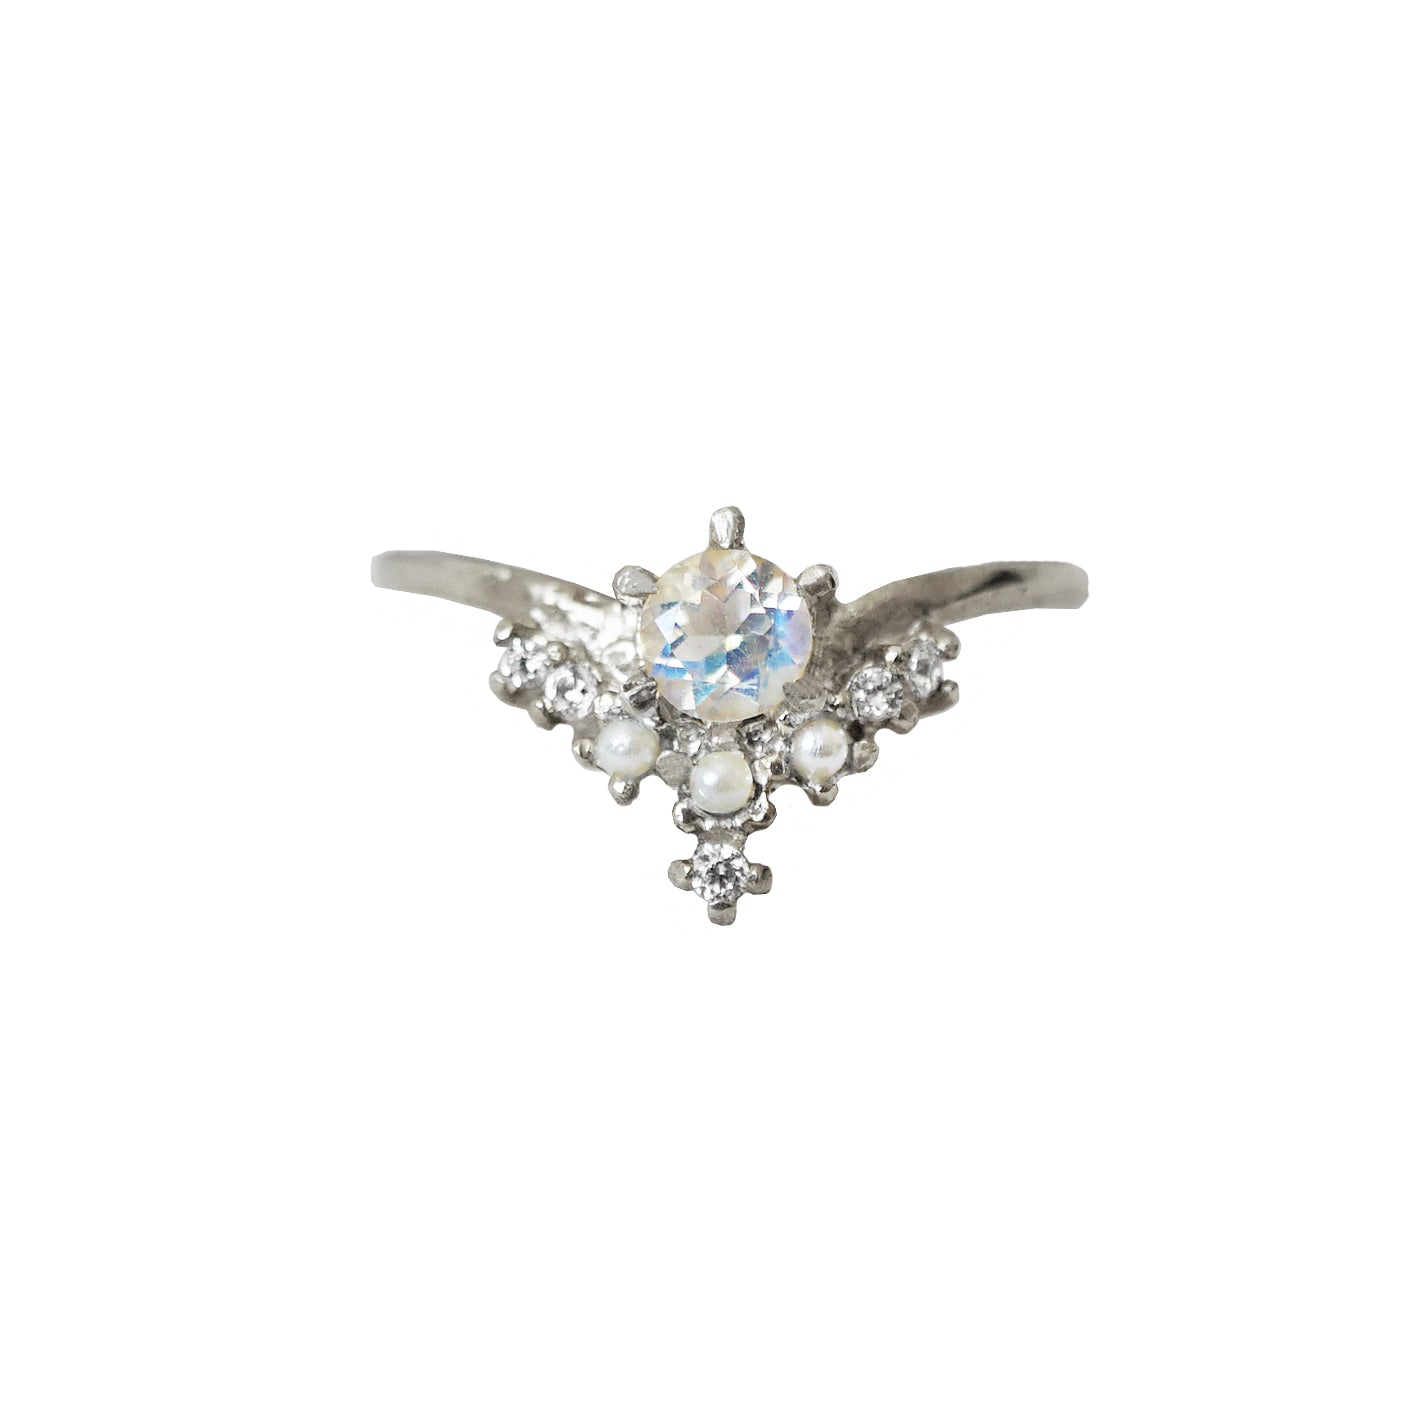 Angelic Moonstone Pearl Ring - Tippy Taste Jewelry